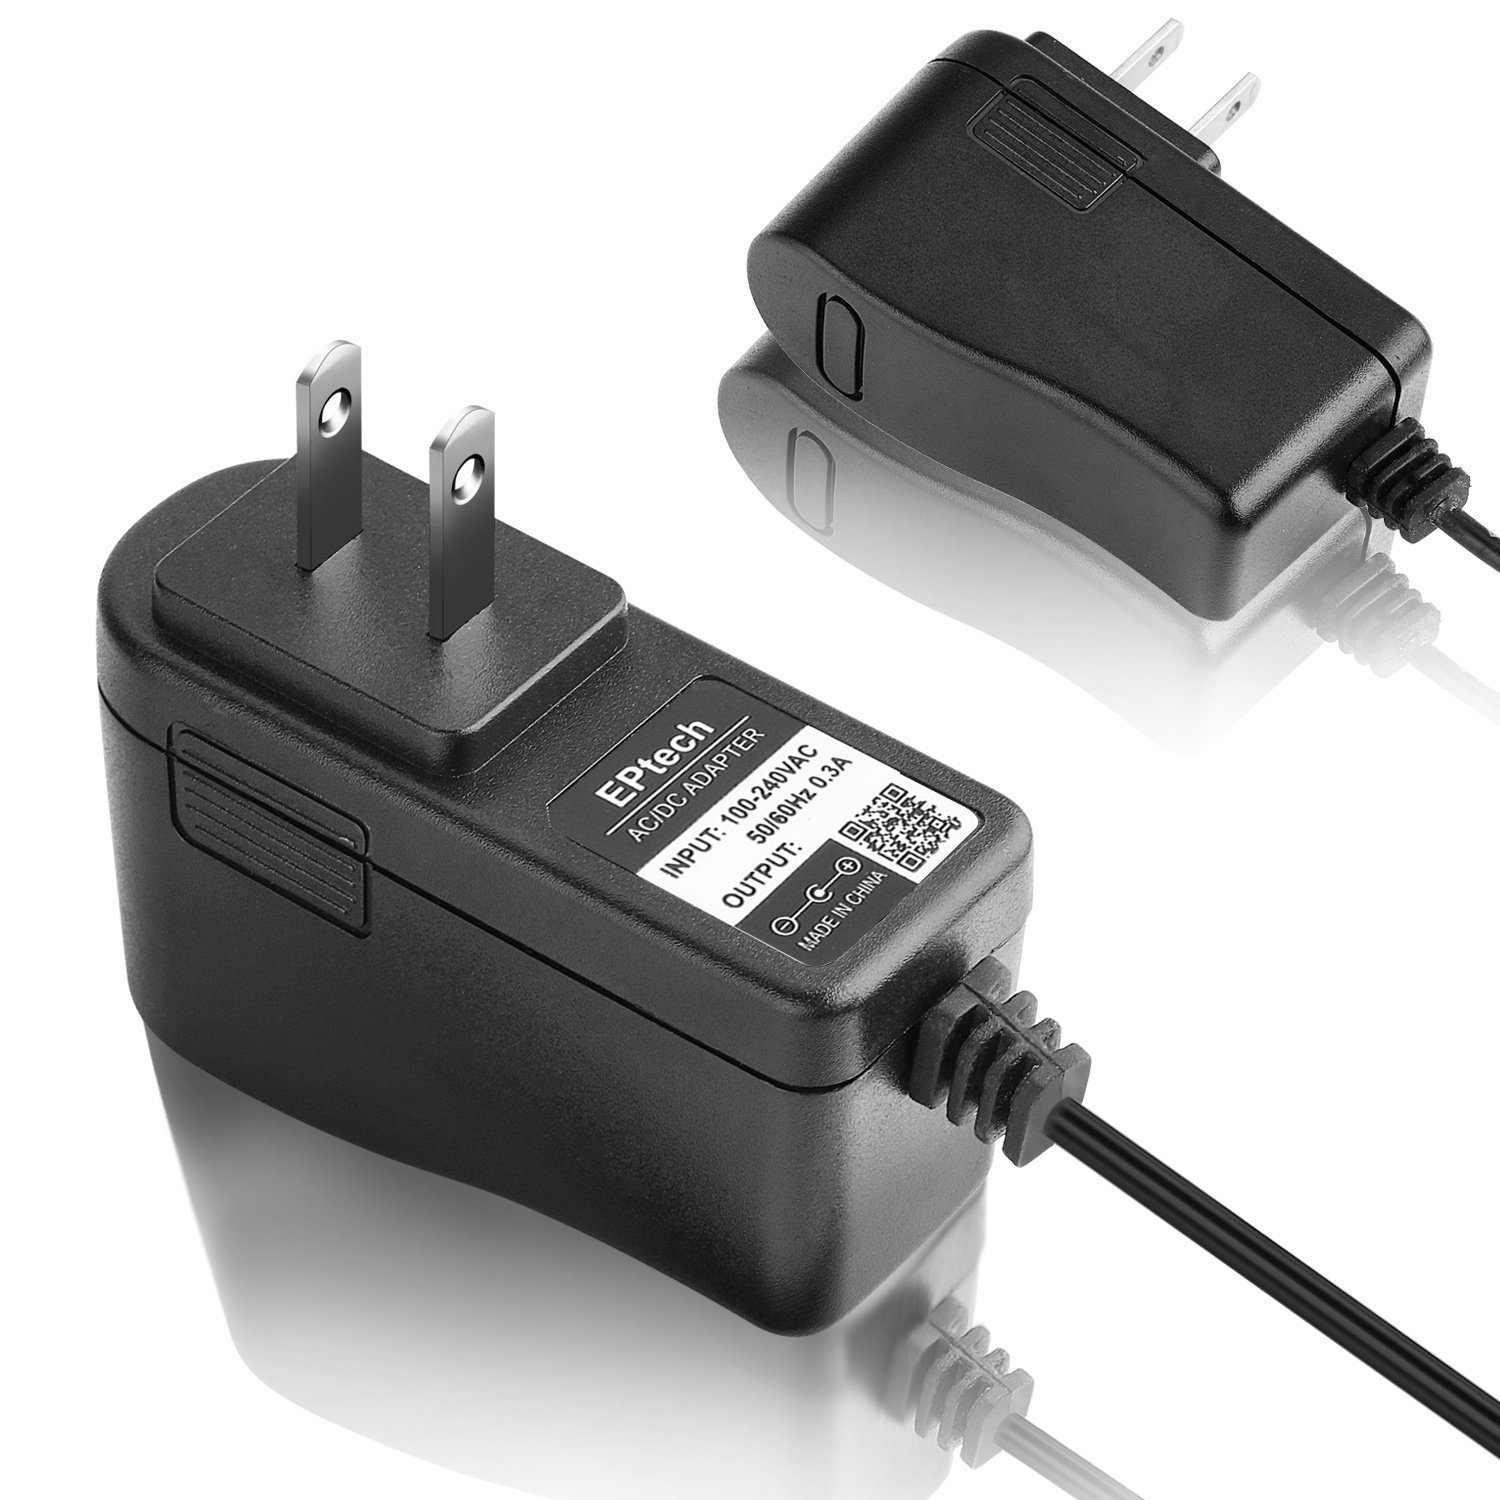 1A AC Adapter Wall Charger DC Power Supply Cord For Nook BNRZ100 BNRV500 eReader